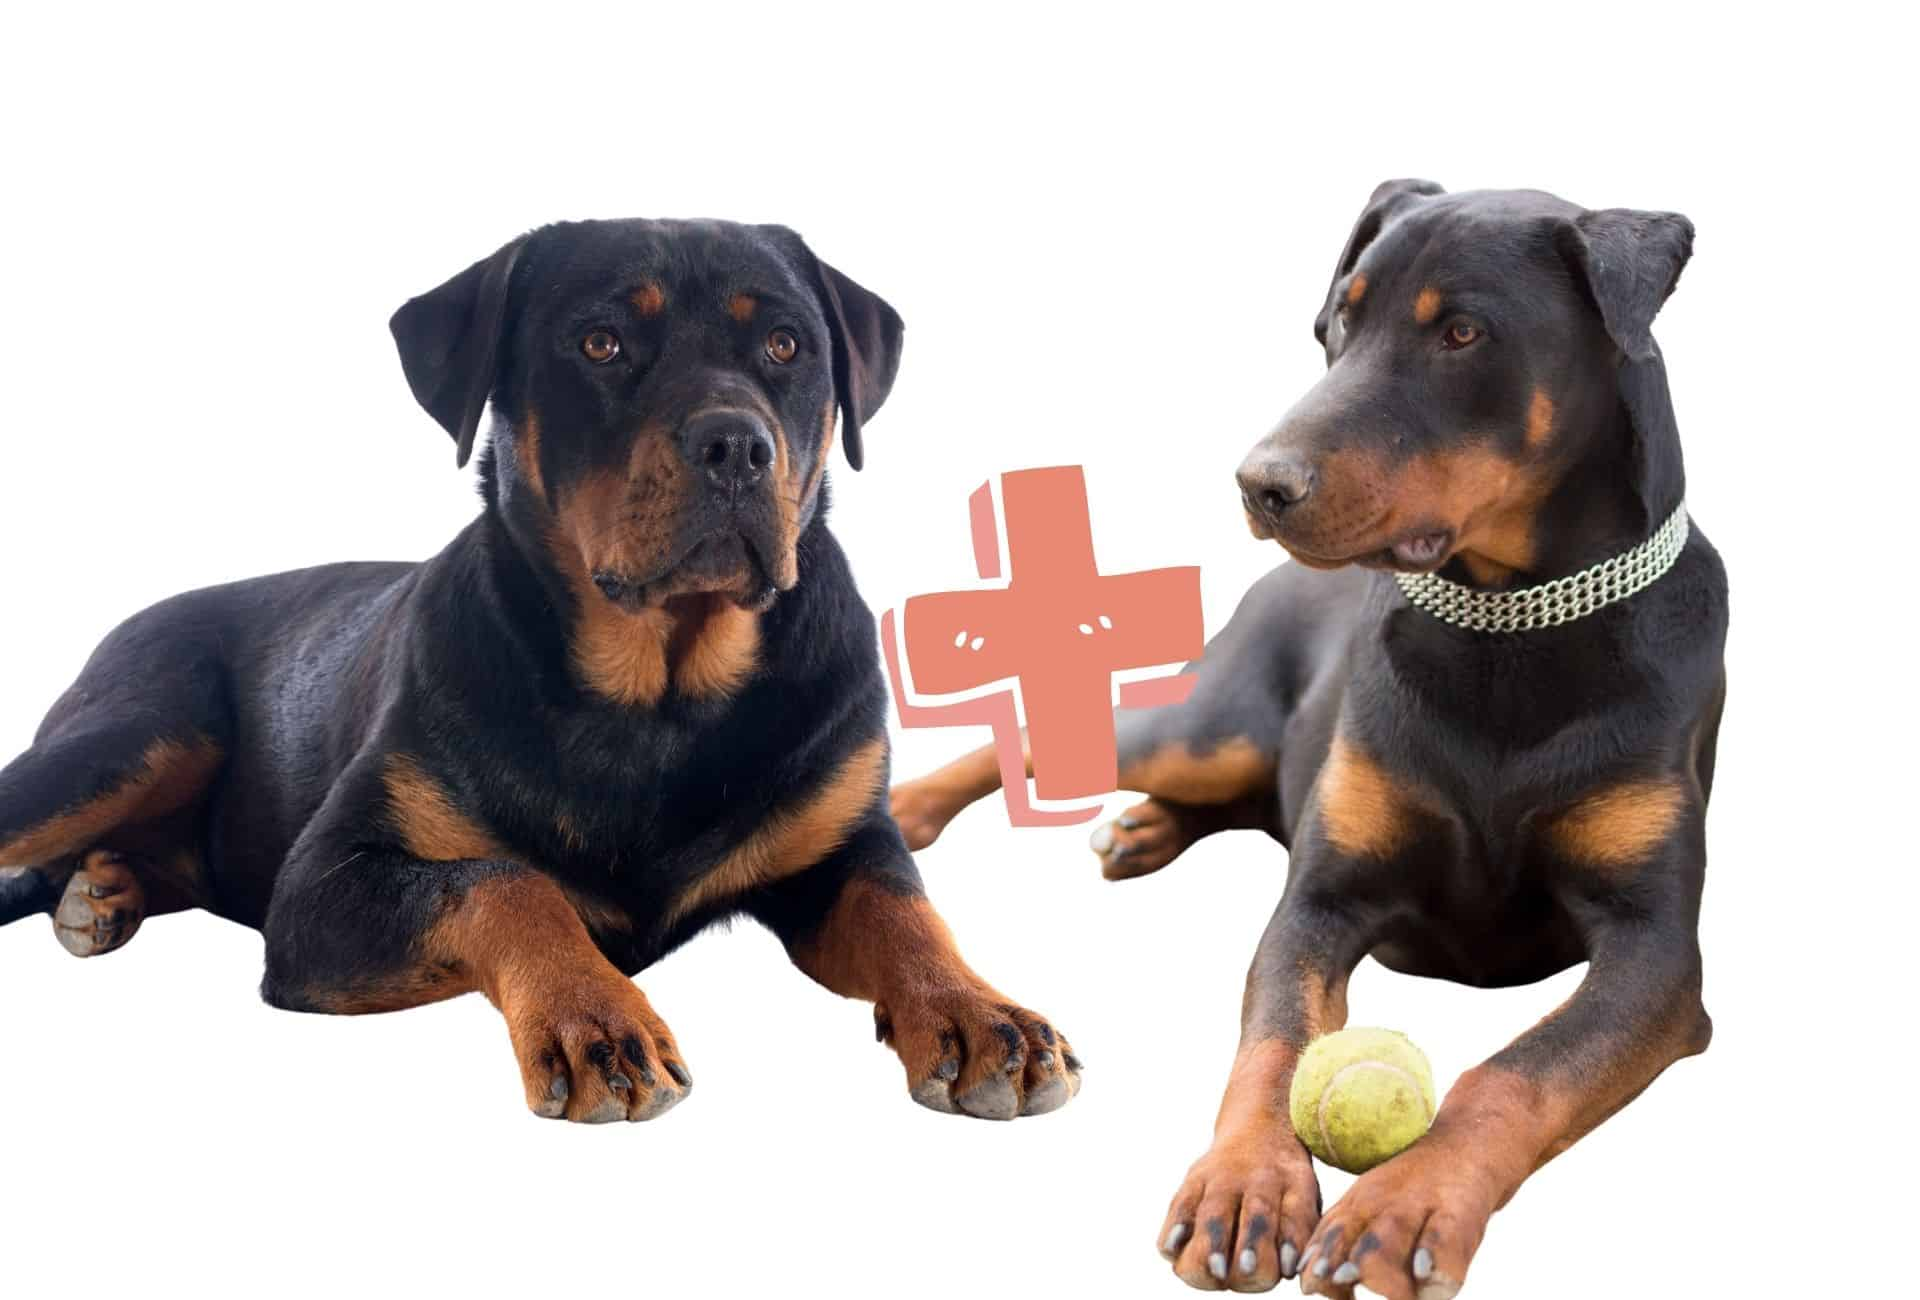 Rottweiler on the left plus a Doberman on the right equals the Rotterman.